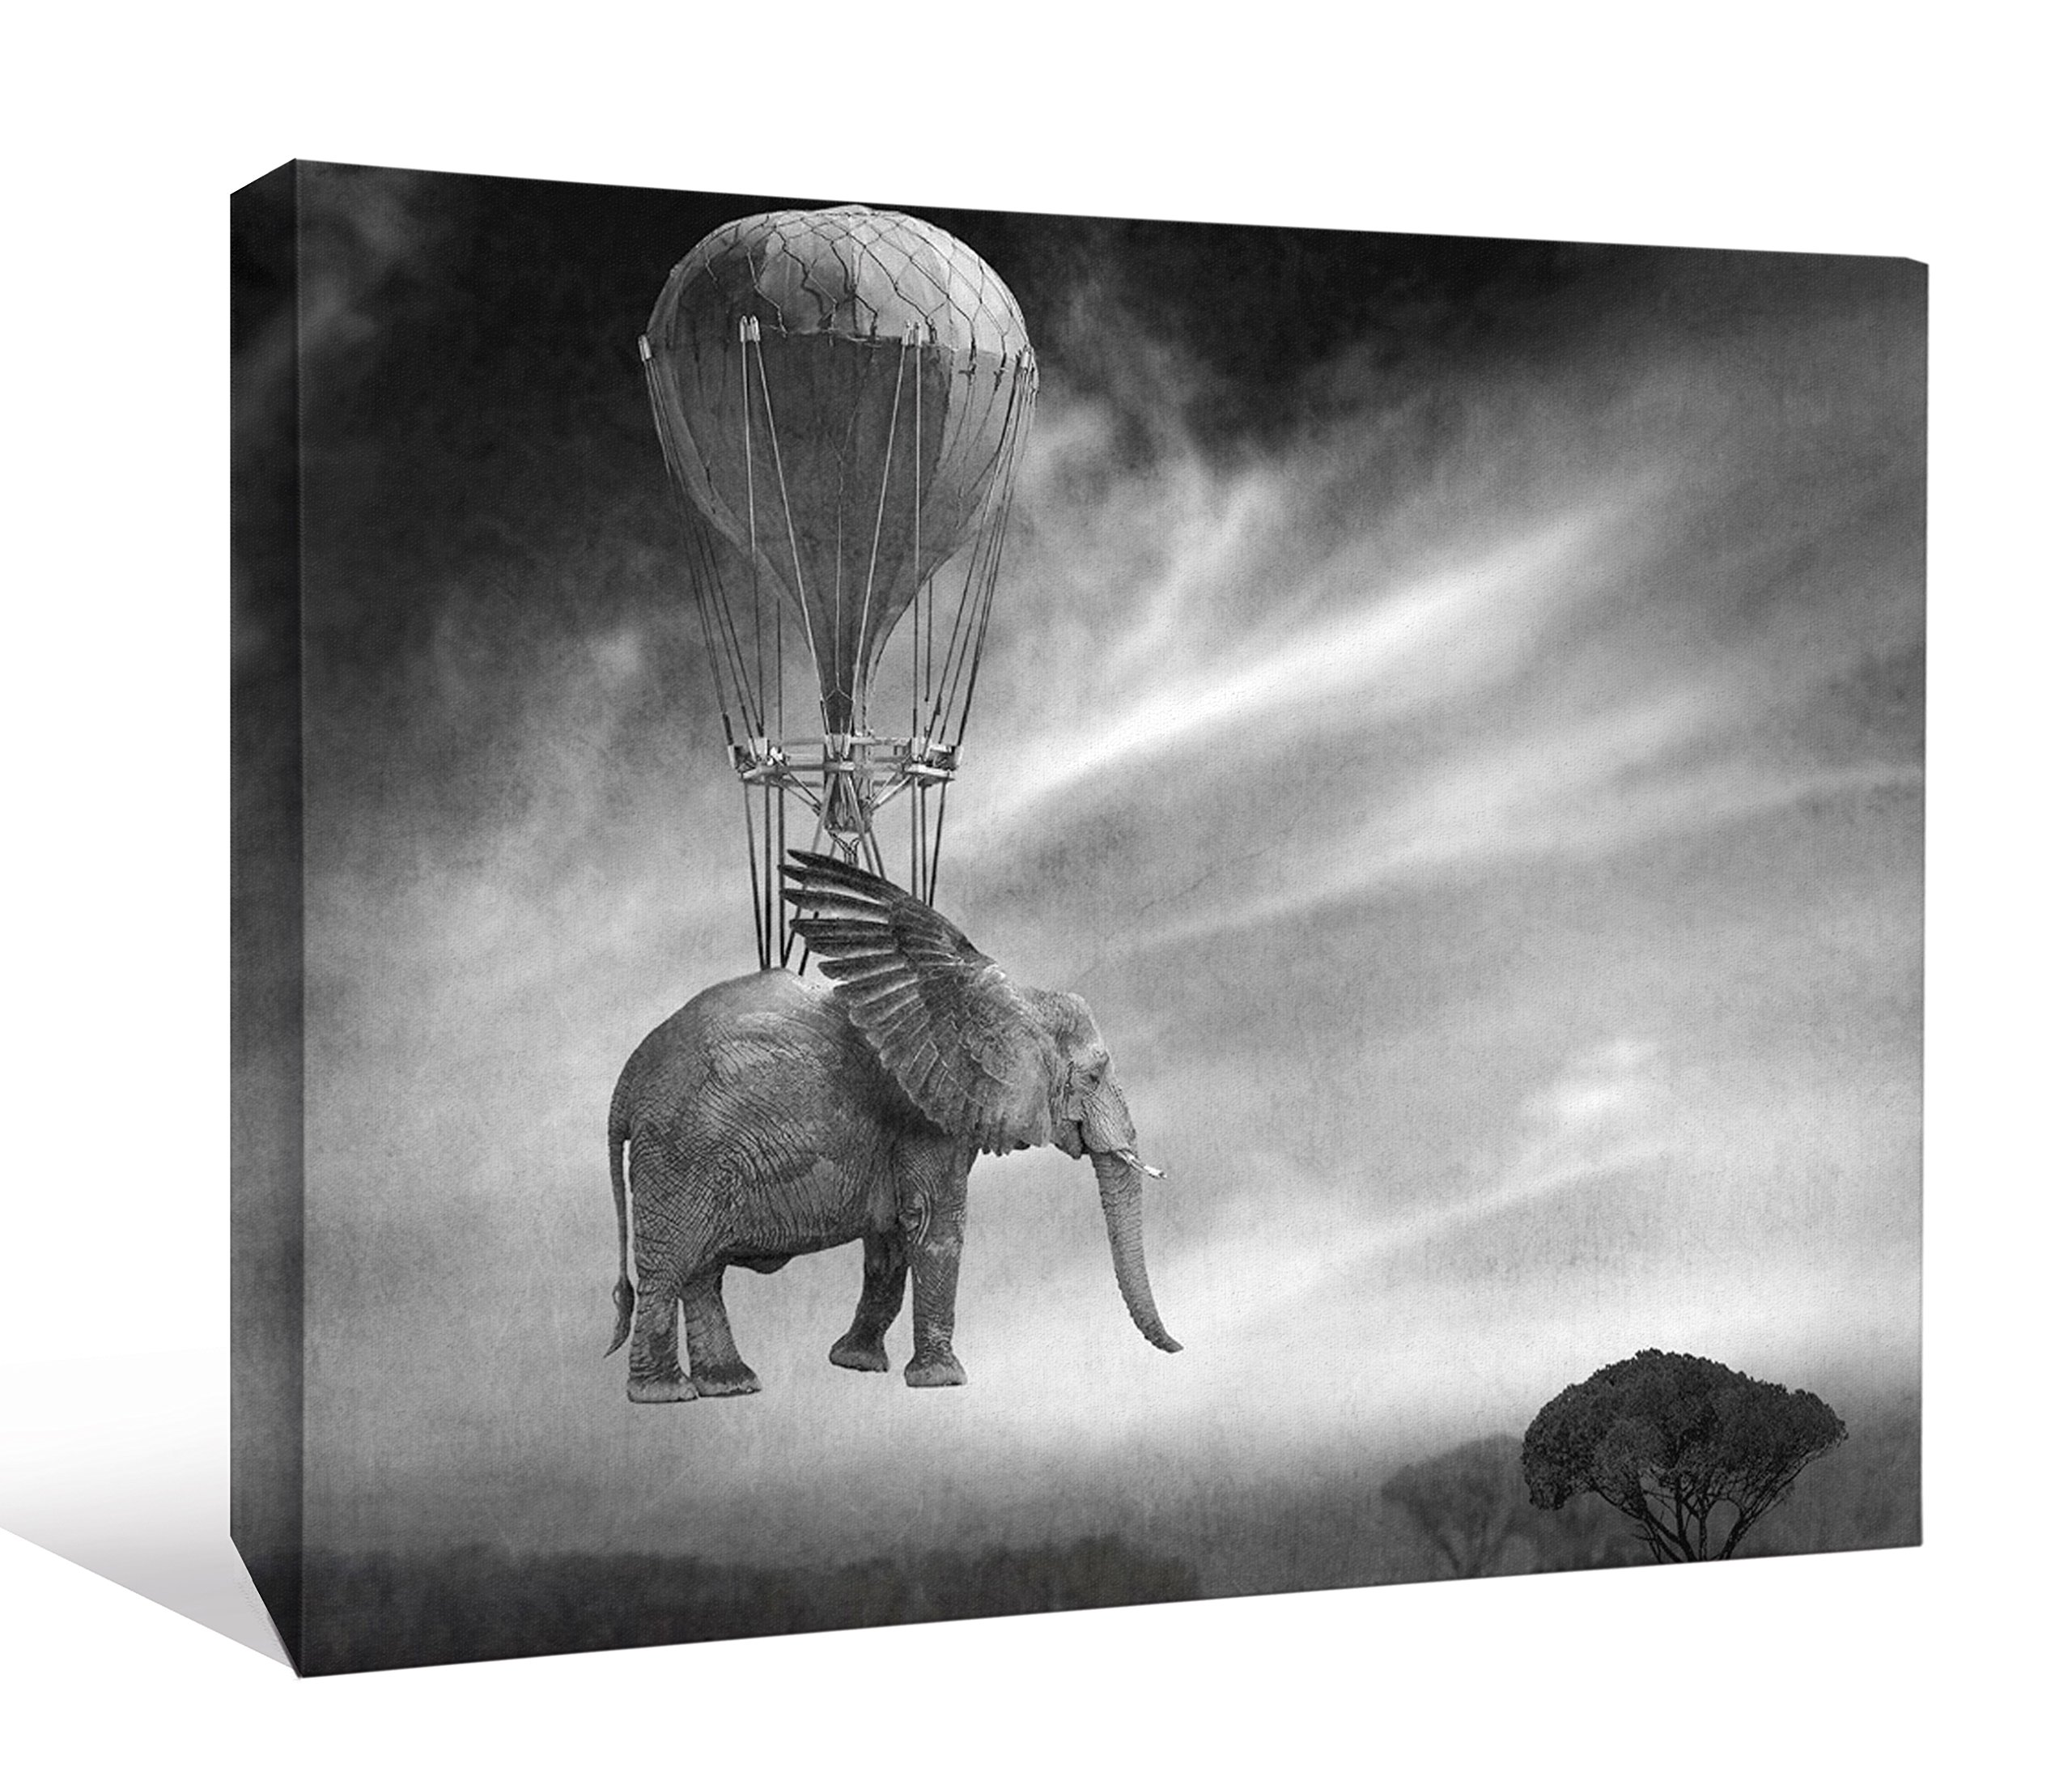 JP London DDCNV1 X 1015040 Ready to Hang Feature Wall Art Africa Is Moving. Elephant Hot Air Balloon Steampunk 2'' Thick Heavyweight Gallery Wrap Canvas 60'' x 40''